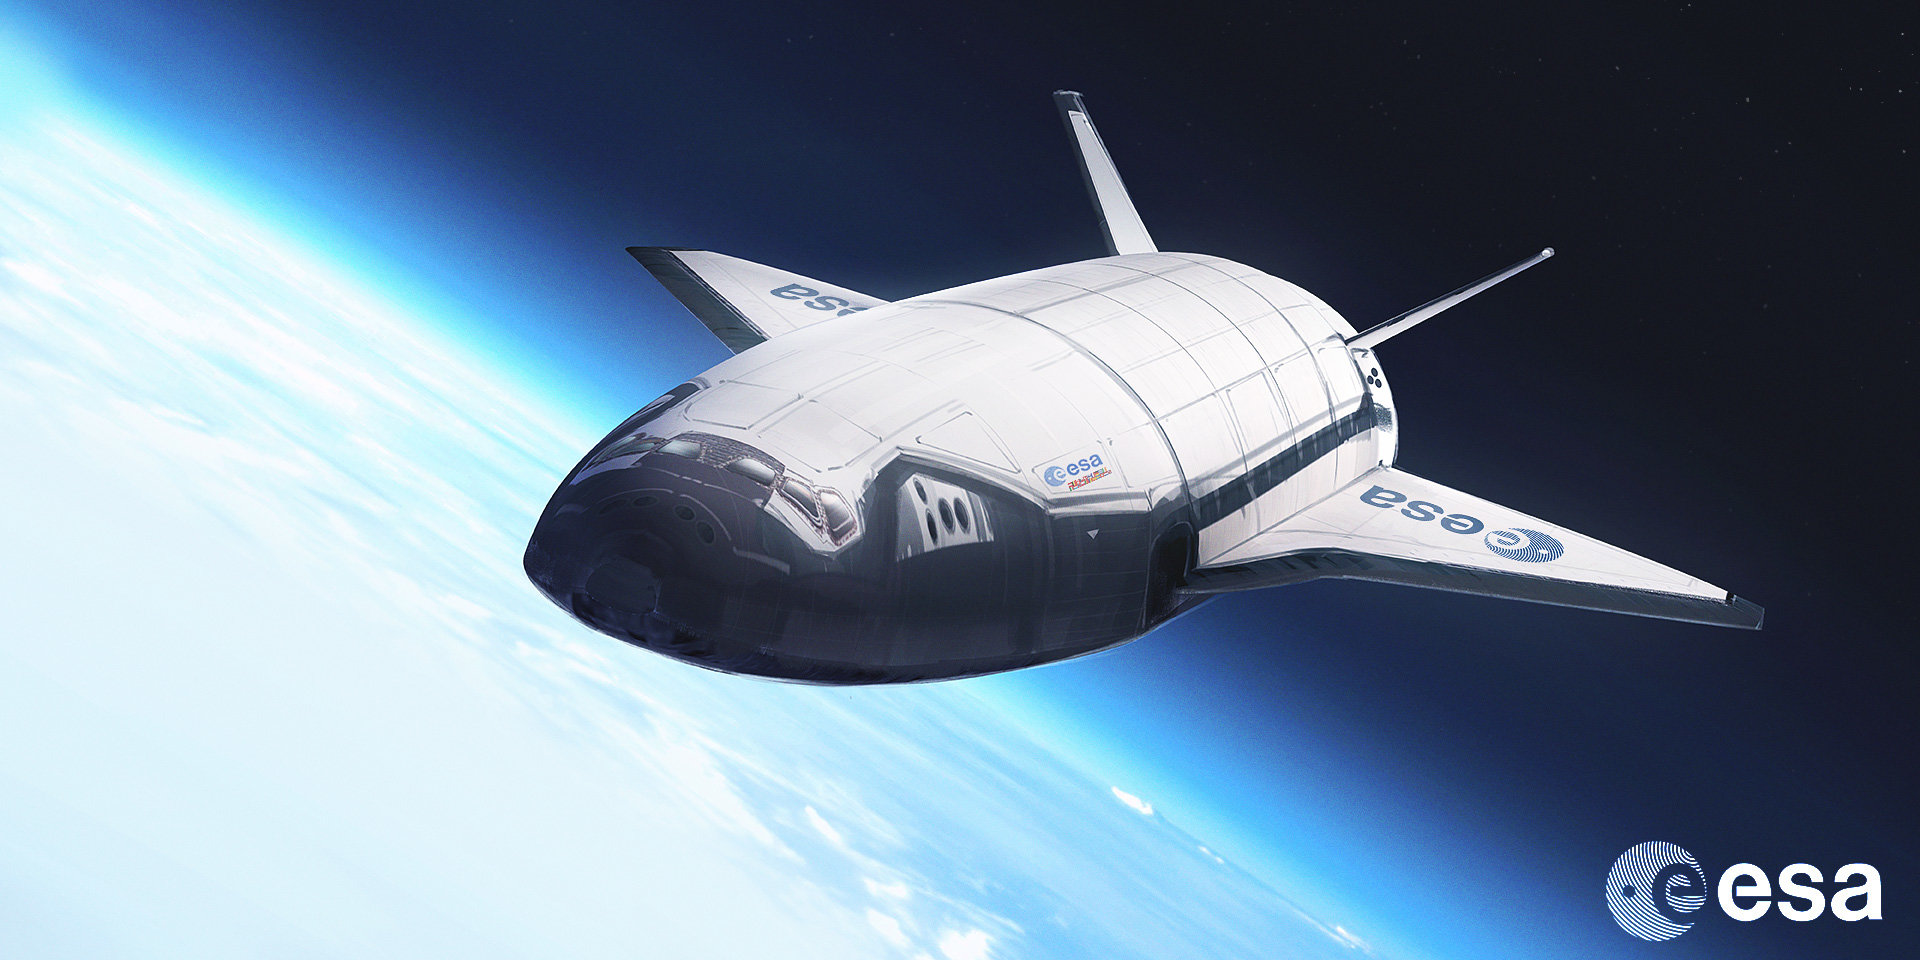 Mac rebisz 20150220 esa spaceplane 001